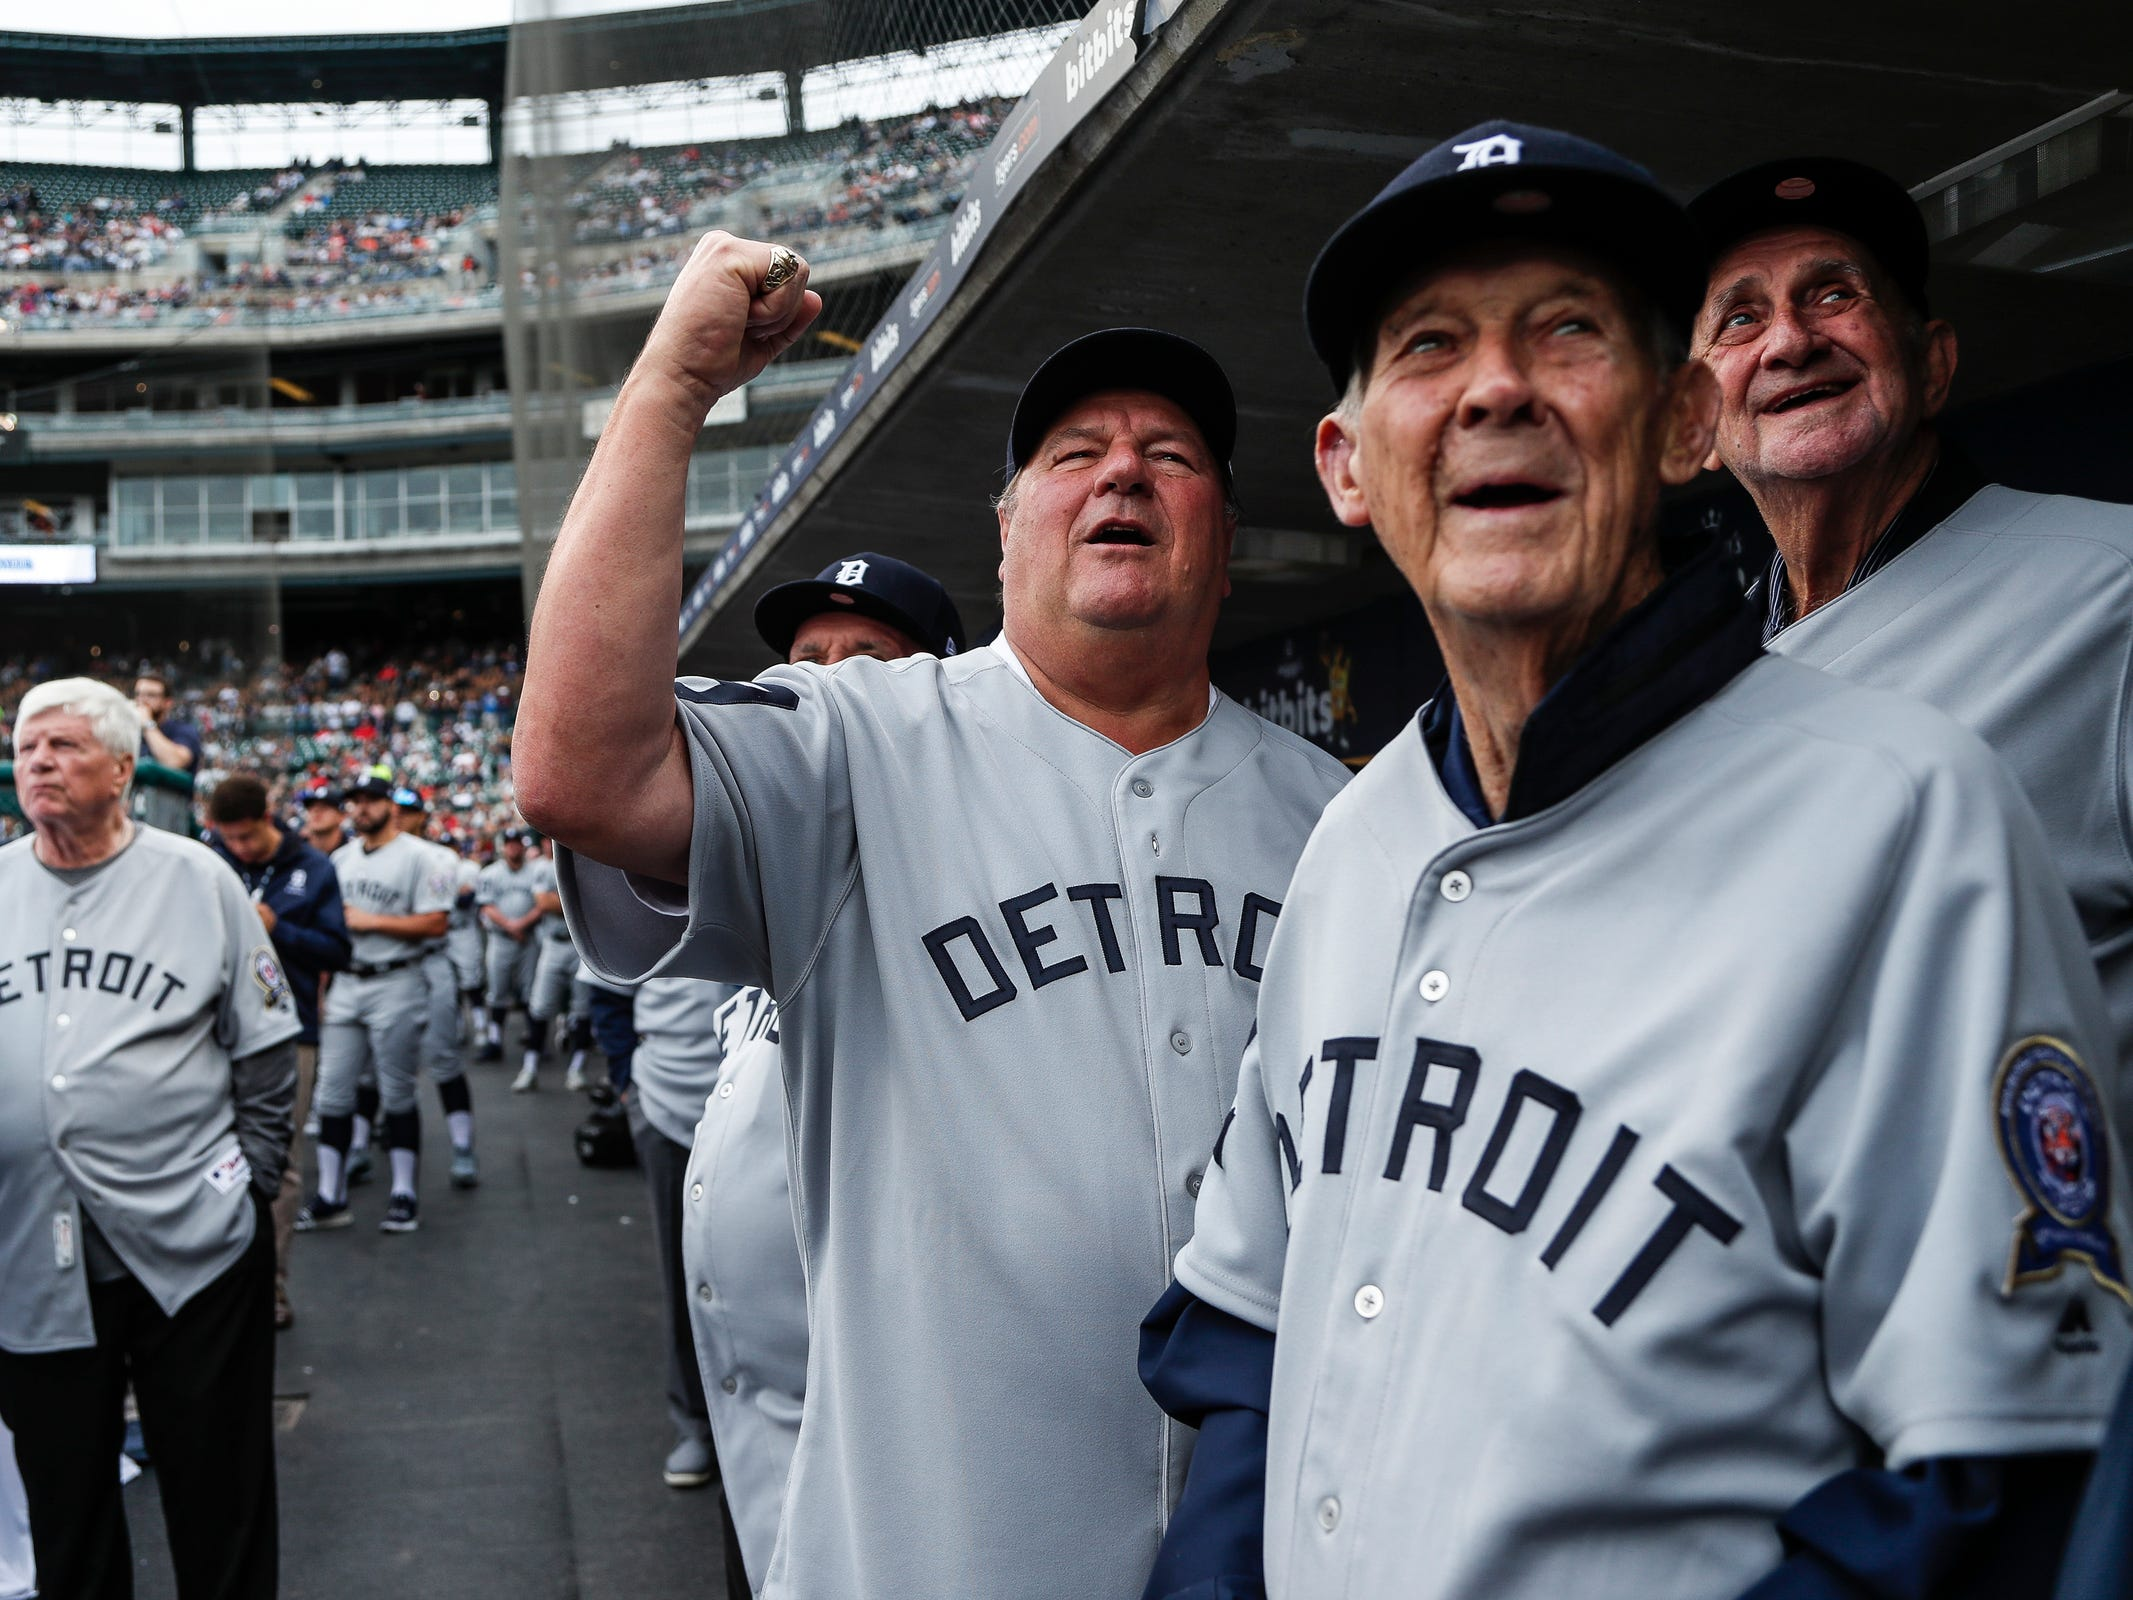 Former Detroit Tigers' Jon Warden, center, coach Hal Naragon, third base Don Wert, far right, cheer as they watch highlights from the 1968 season during the celebration of the 50th anniversary of the 1968 World Series championship at Comerica Park in Detroit, Saturday, Sept. 8, 2018.